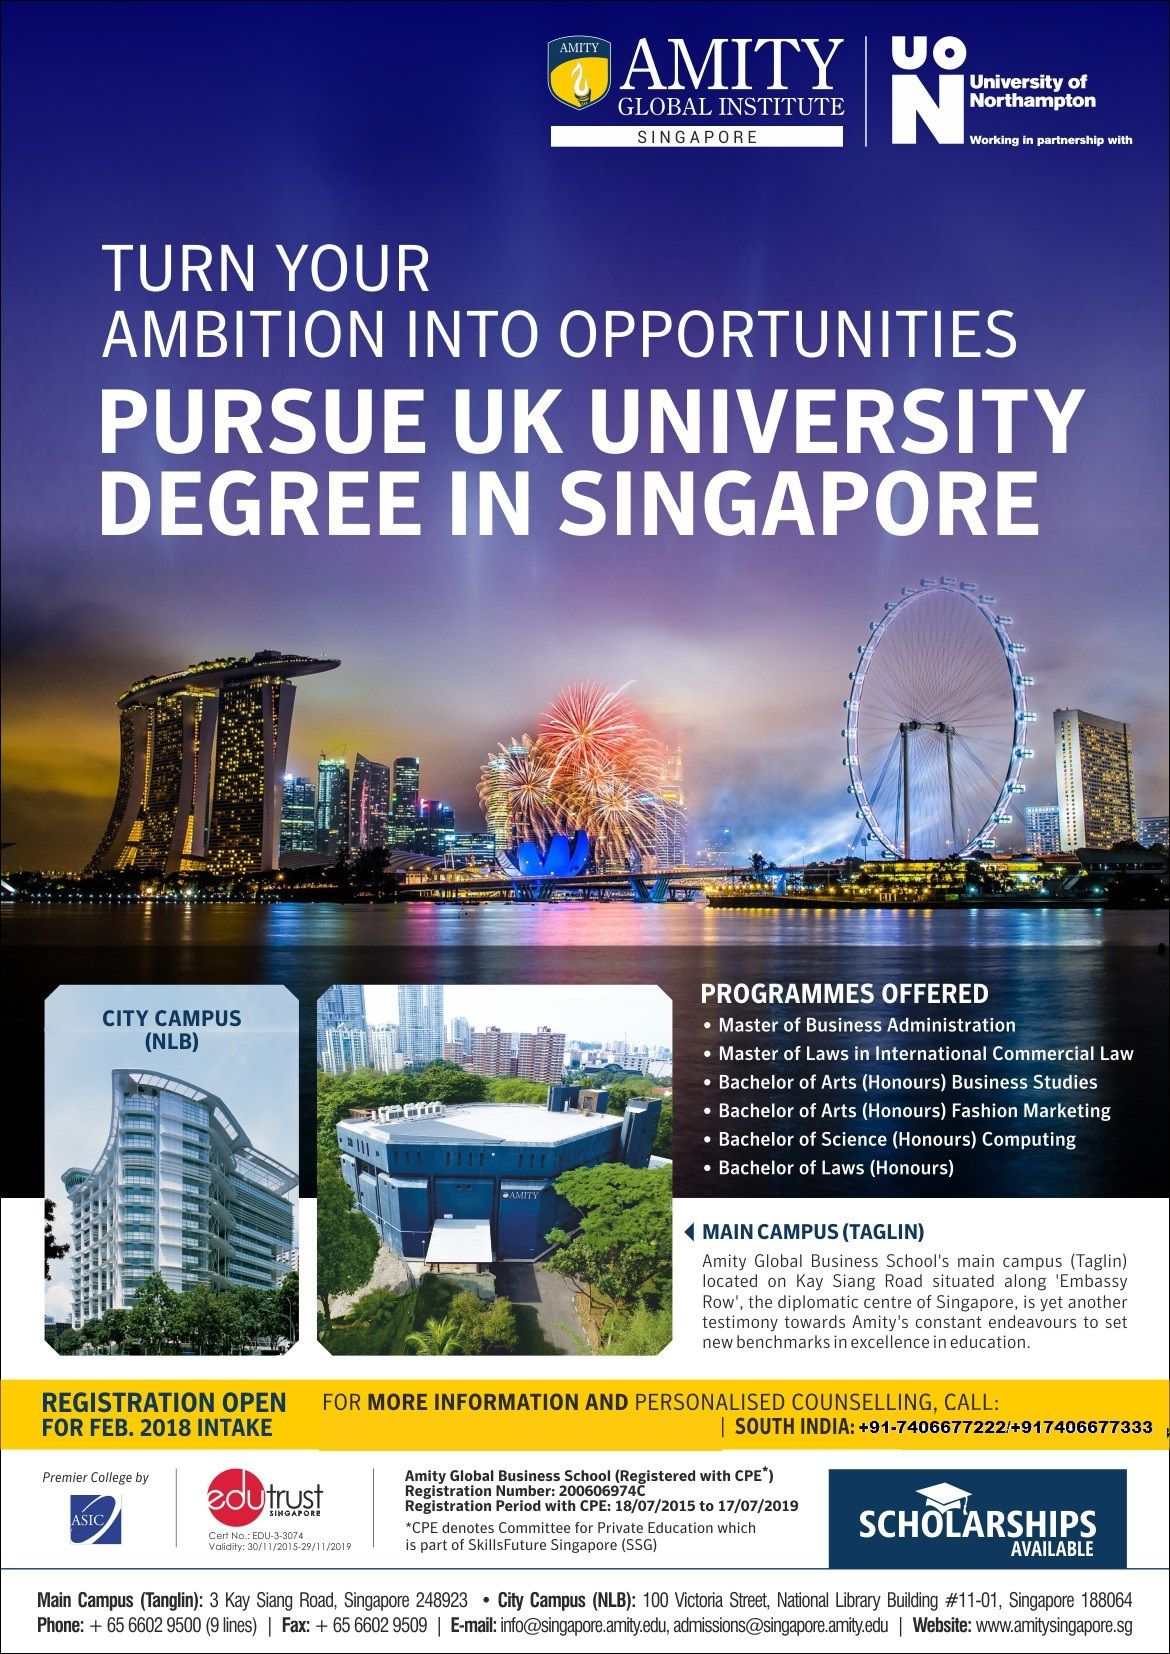 One Year Mba Program In Singapore Campus Registration Open For Feb Intake Write To Us O Masters In Business Administration Online Mba Scholarships For College